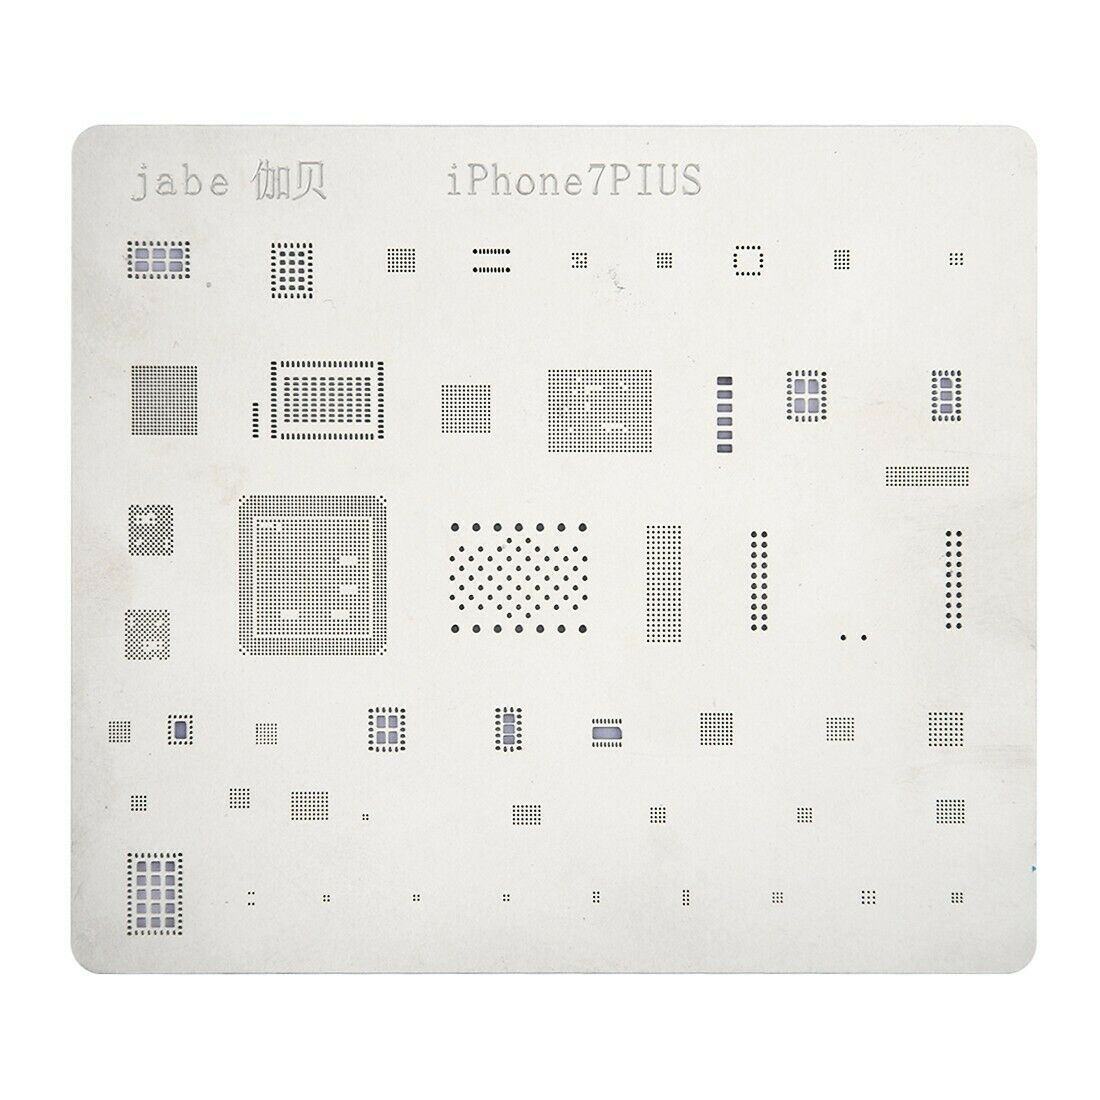 Mobile phone rework iphone 7 plus repair bga reballing stencils riparazione 